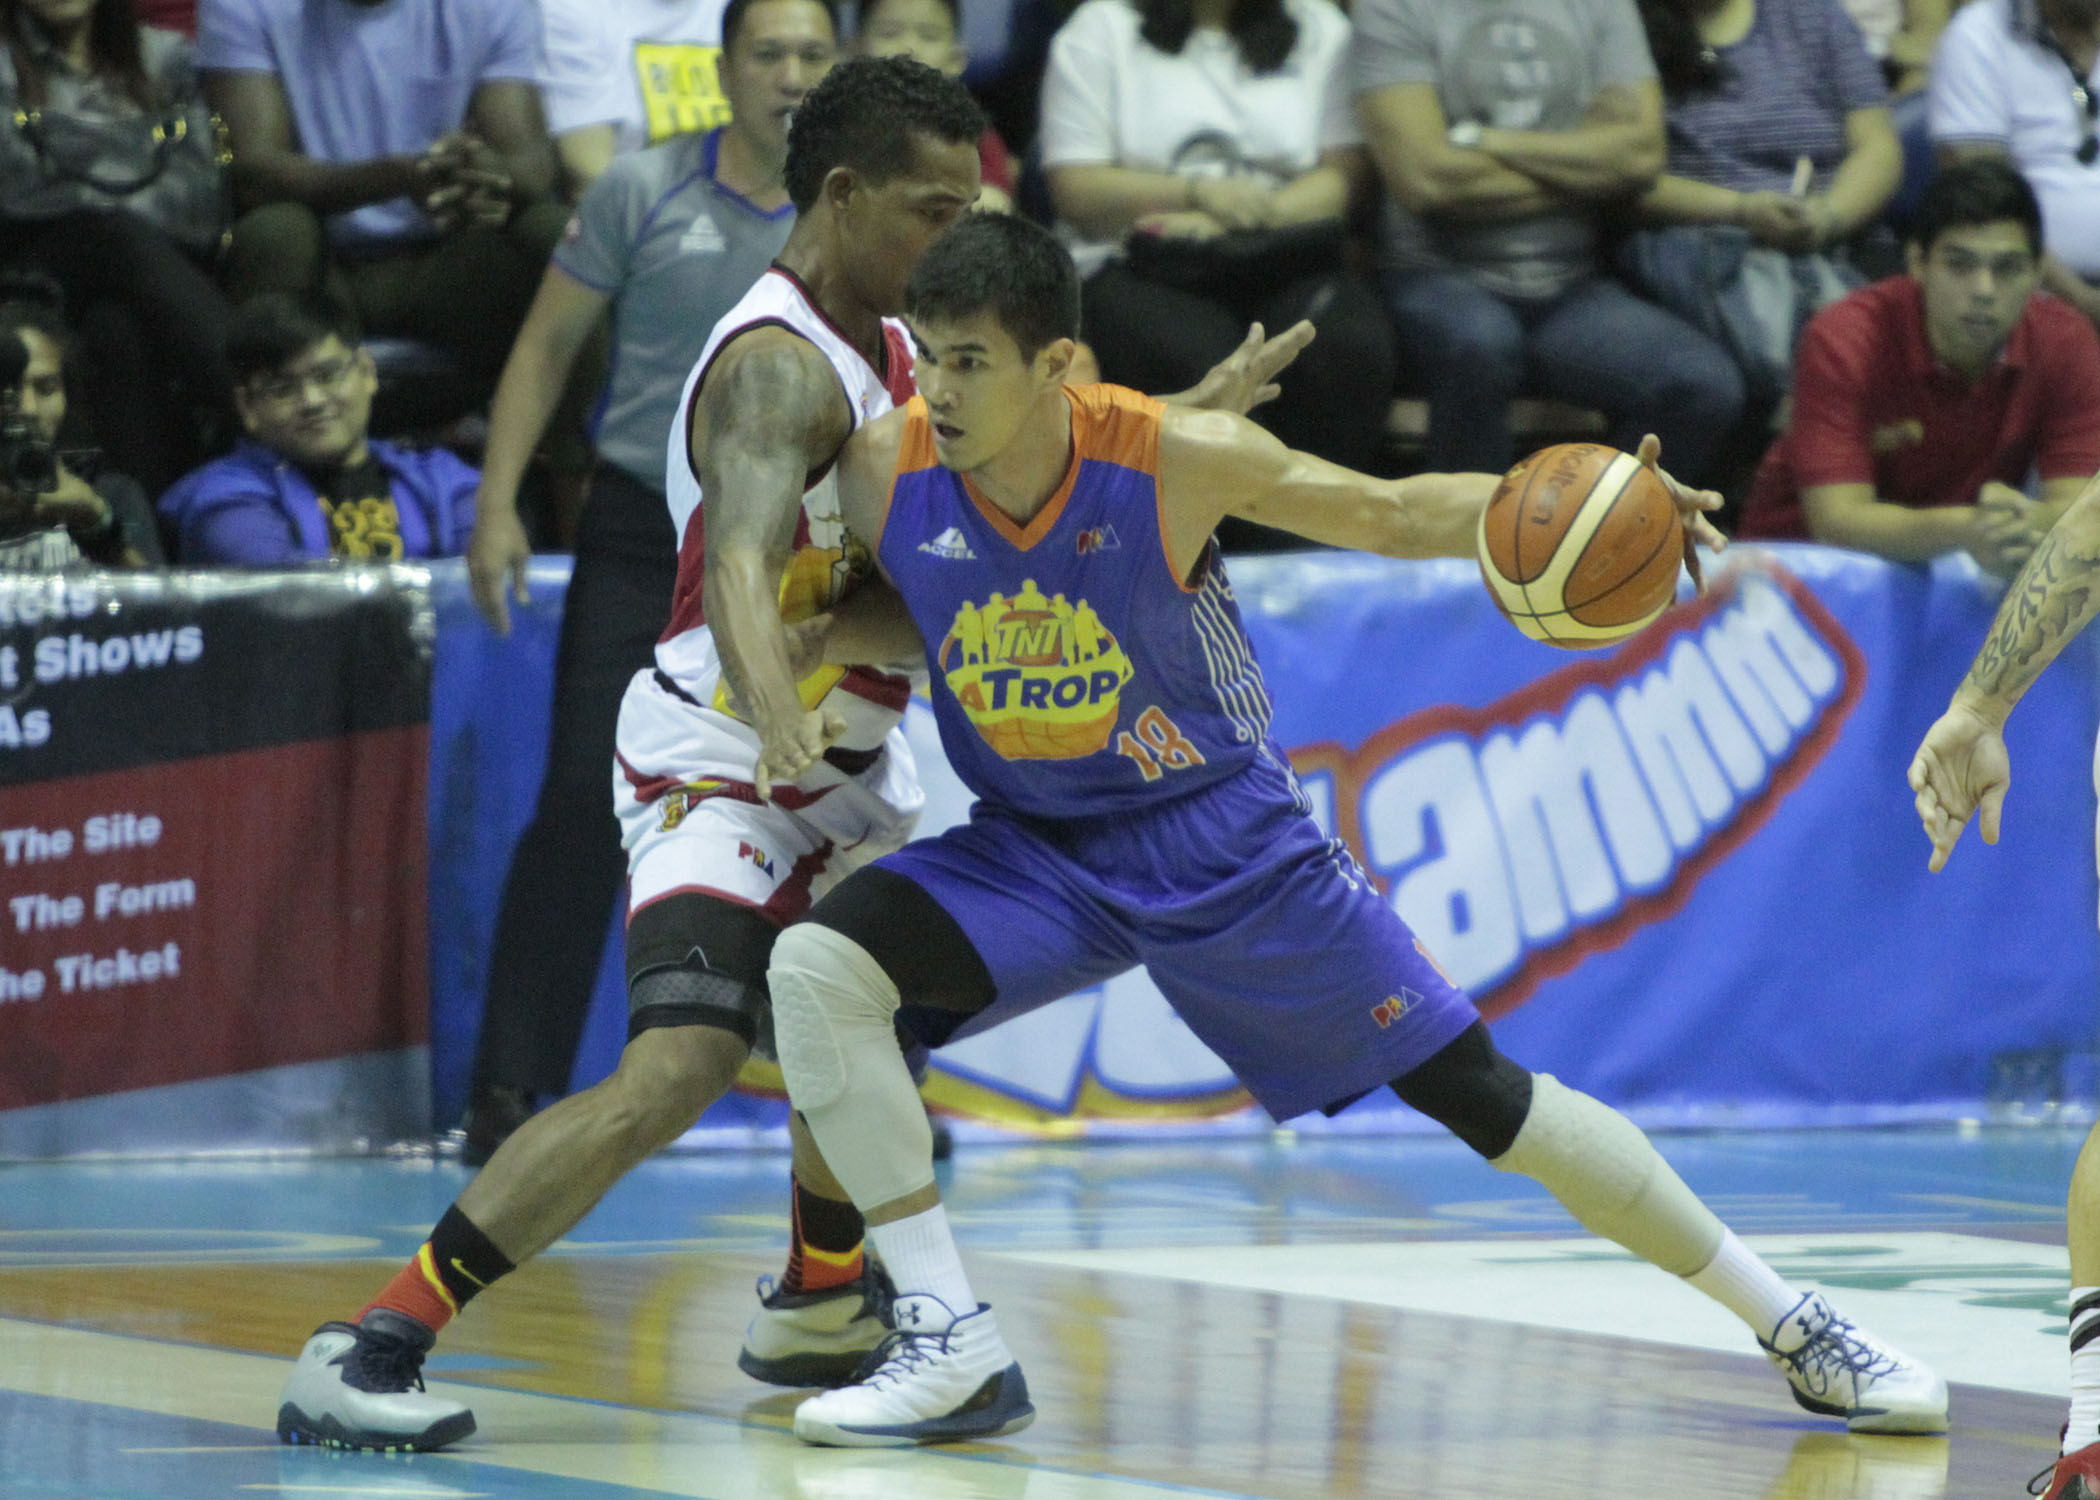 PBA - Talk 'N Text vs San Miguel Beer - Feb. 12, 2017 - KC - 1